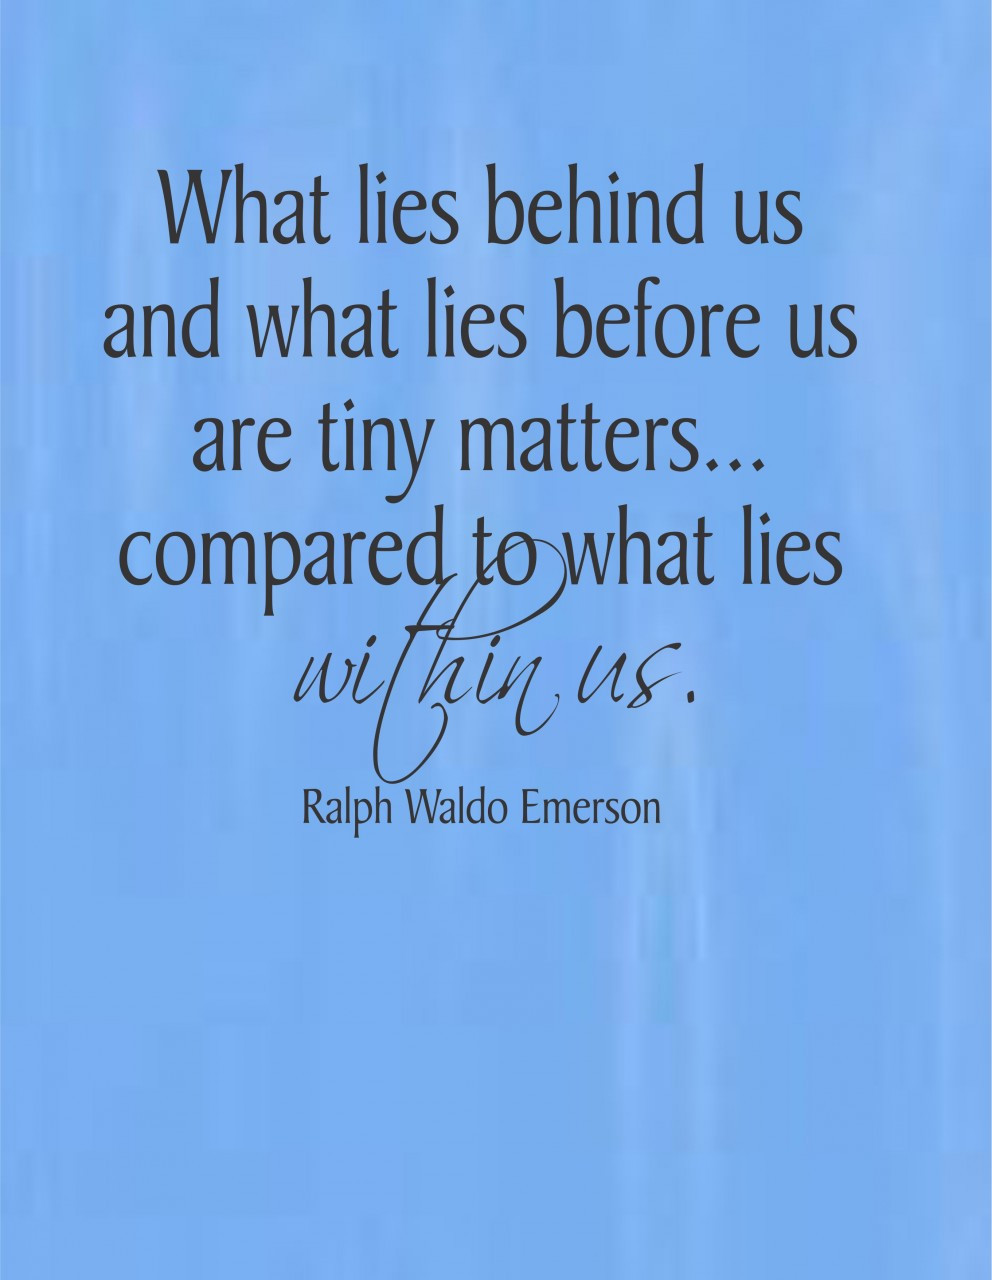 What lies before us and what lies behind us are small matters compared to what